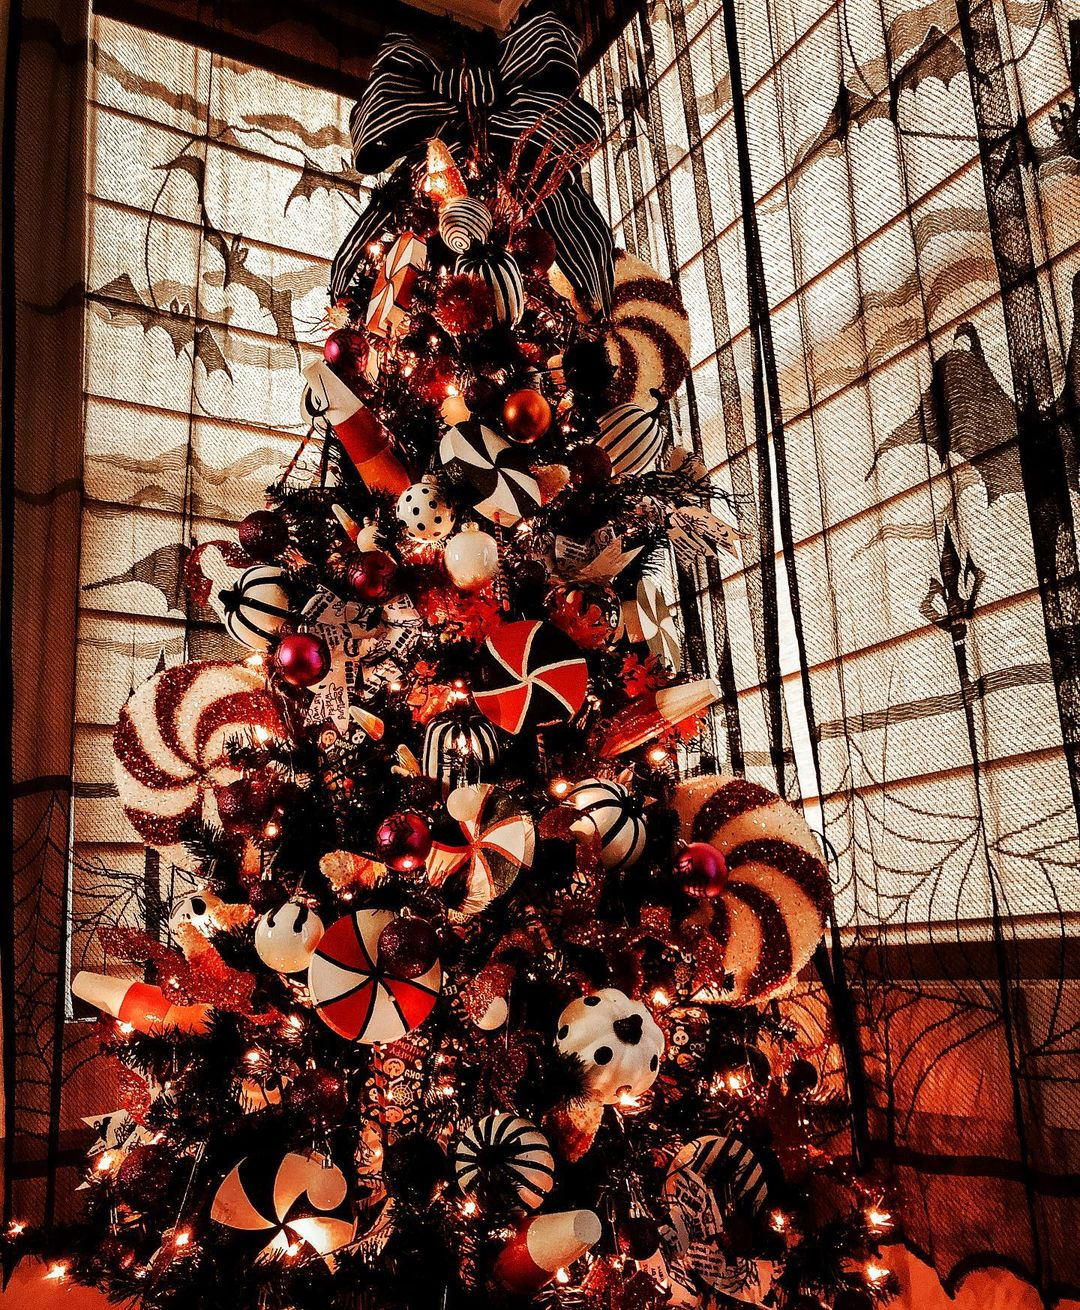 Black Halloween tree with candy canes